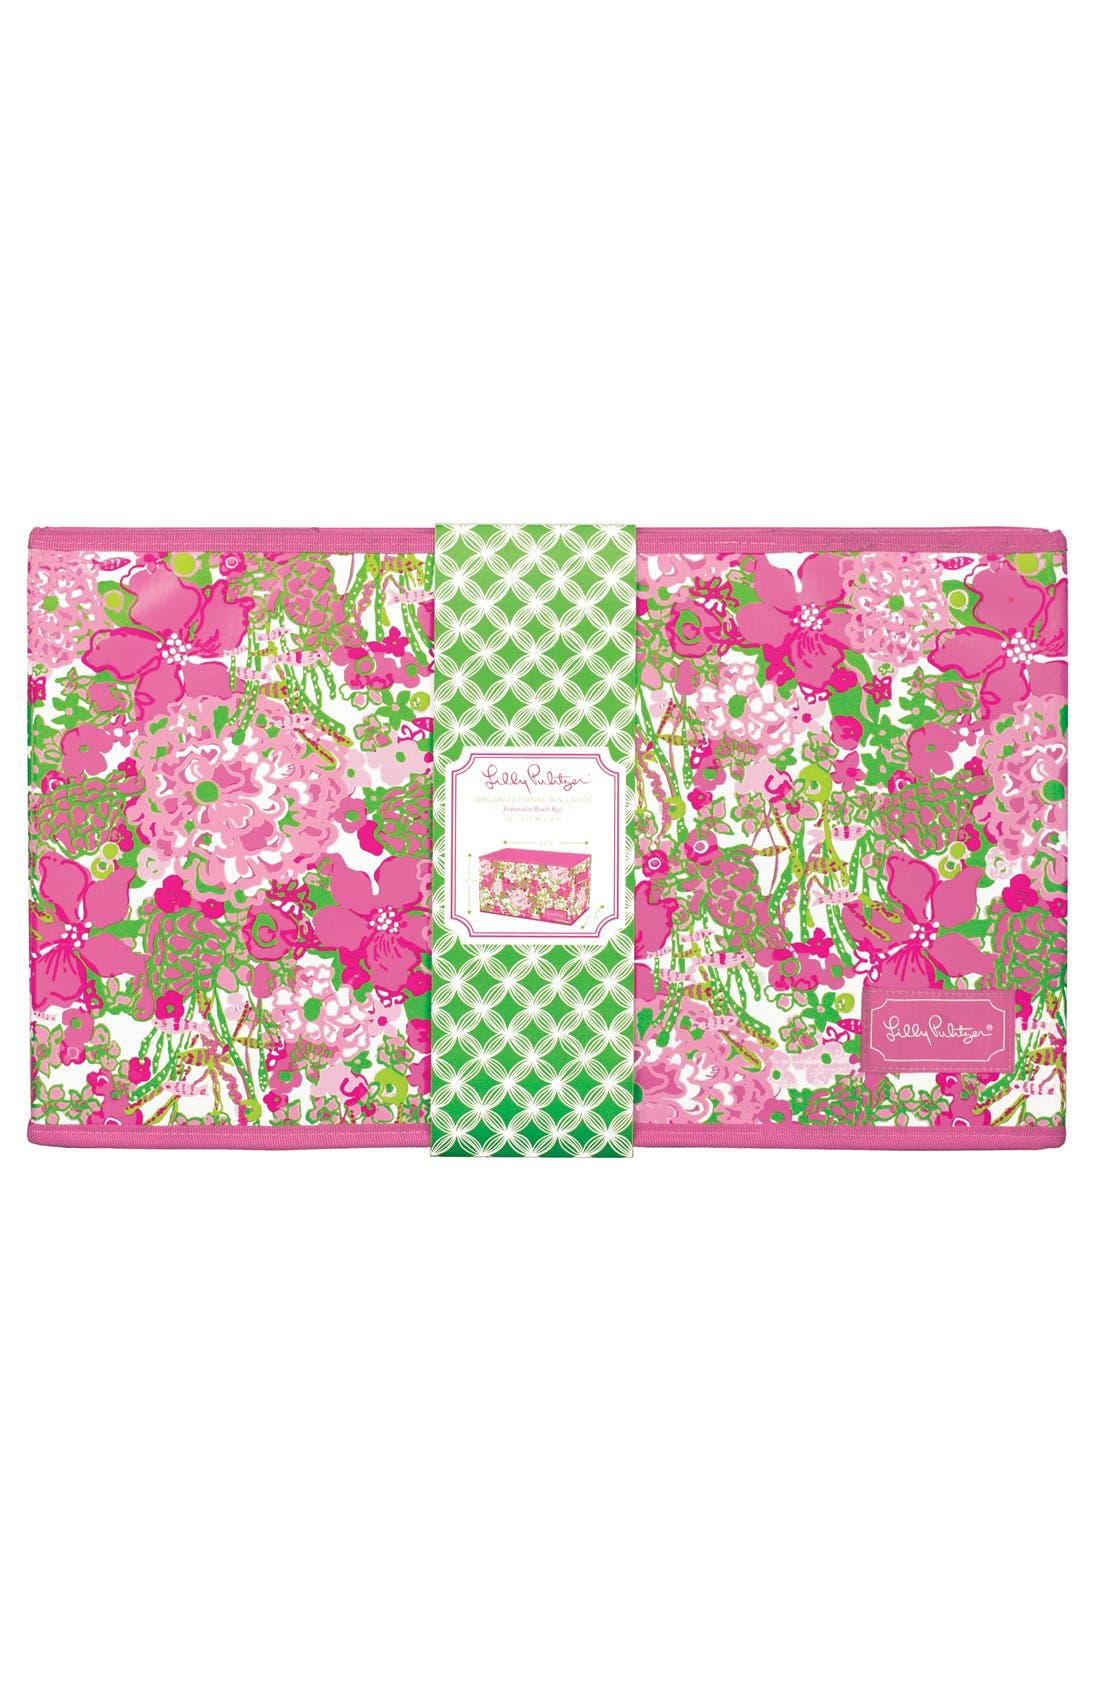 Alternate Image 1 Selected - Lilly Pulitzer® Organizational Bin